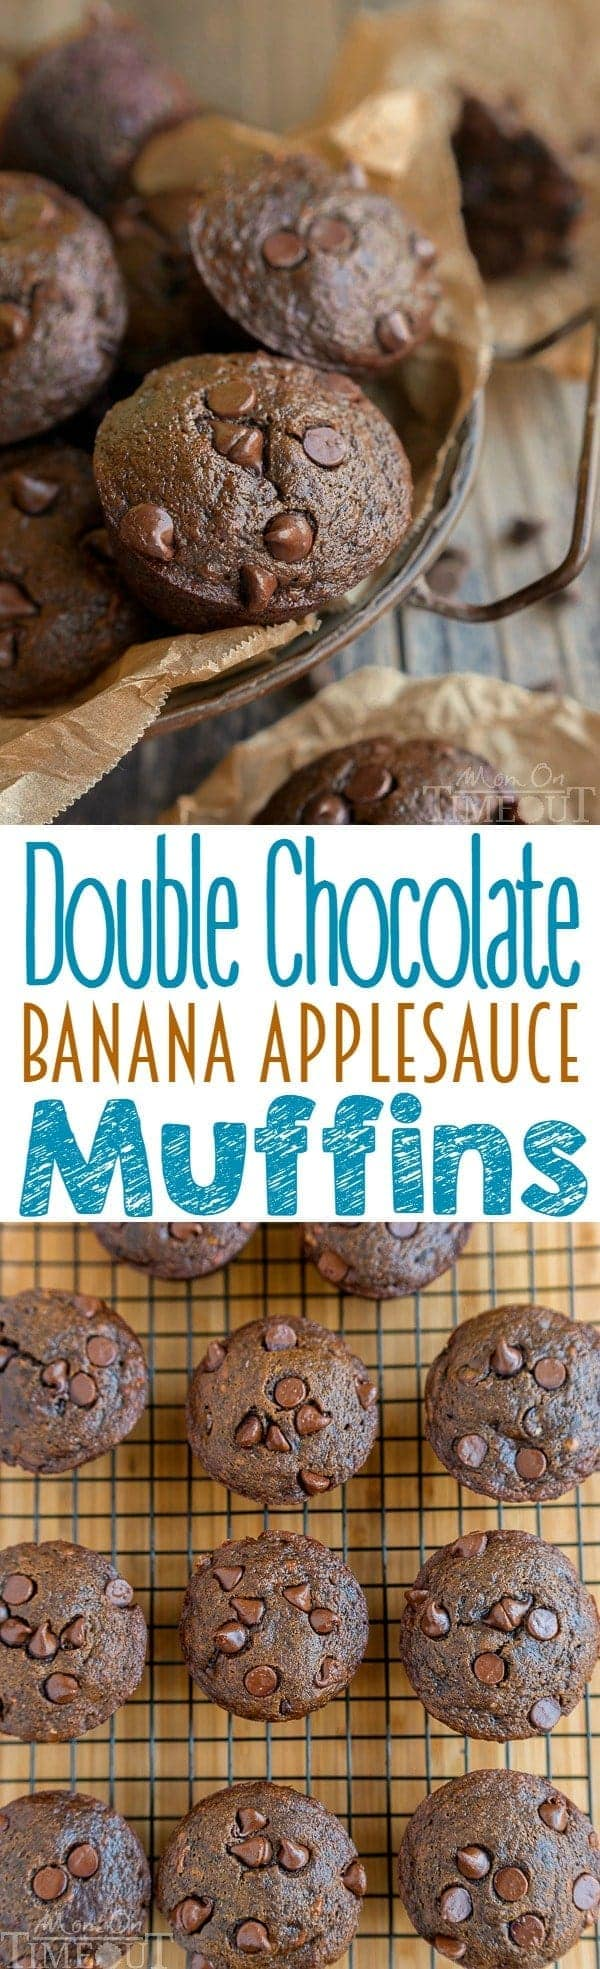 Double Chocolate Banana Applesauce Muffins are perfect for those days when you wake up craving chocolate. Easy, delicious and made without oil, butter, or eggs. The perfect breakfast or brunch recipe! // Mom On Timeout